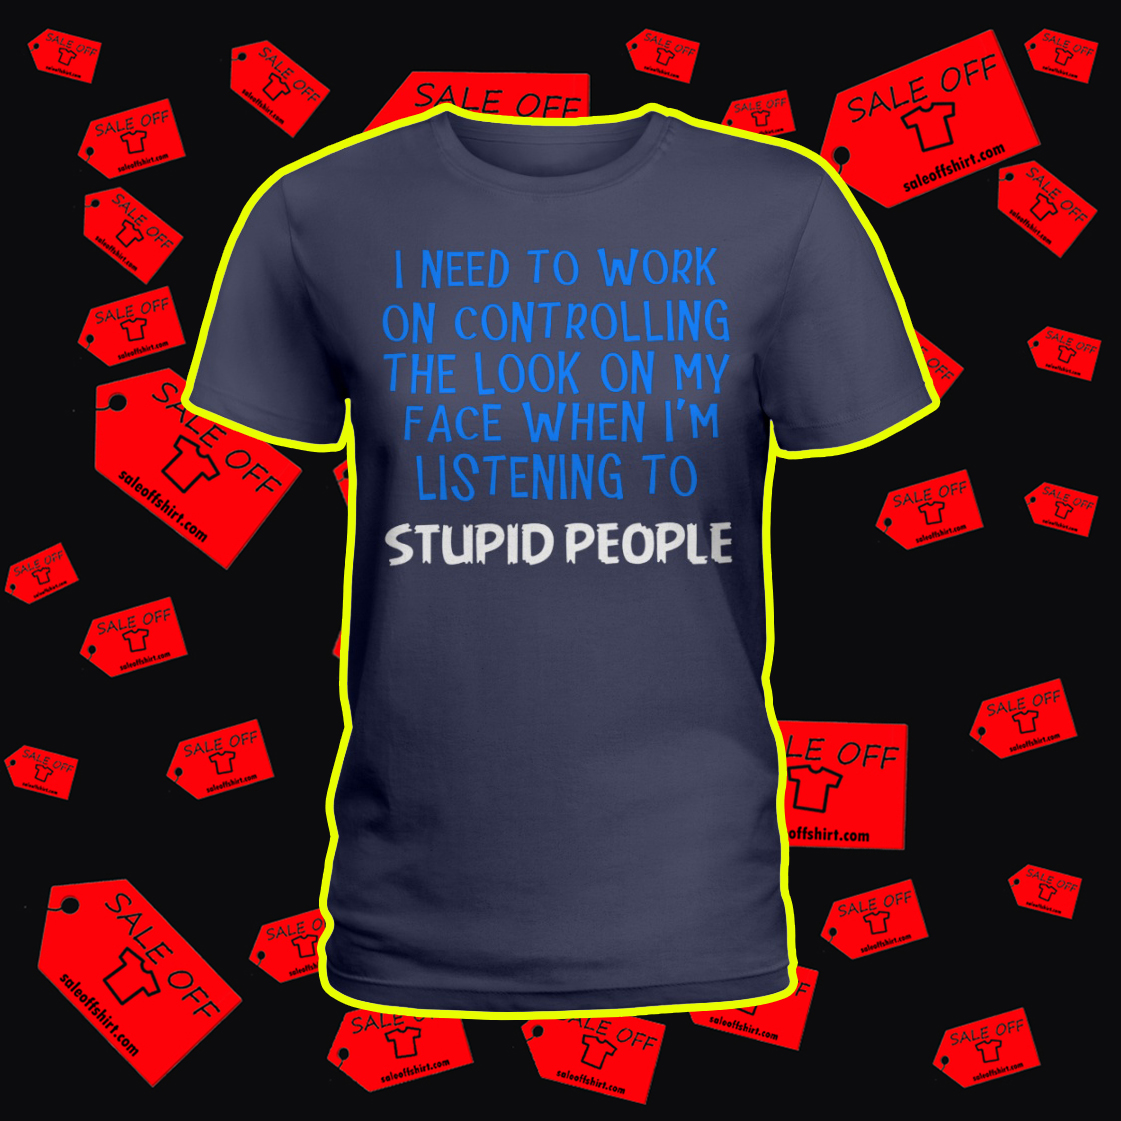 I Need To Work On Controlling The Look On My Face When I'm Listening To Stupid People lady shirt